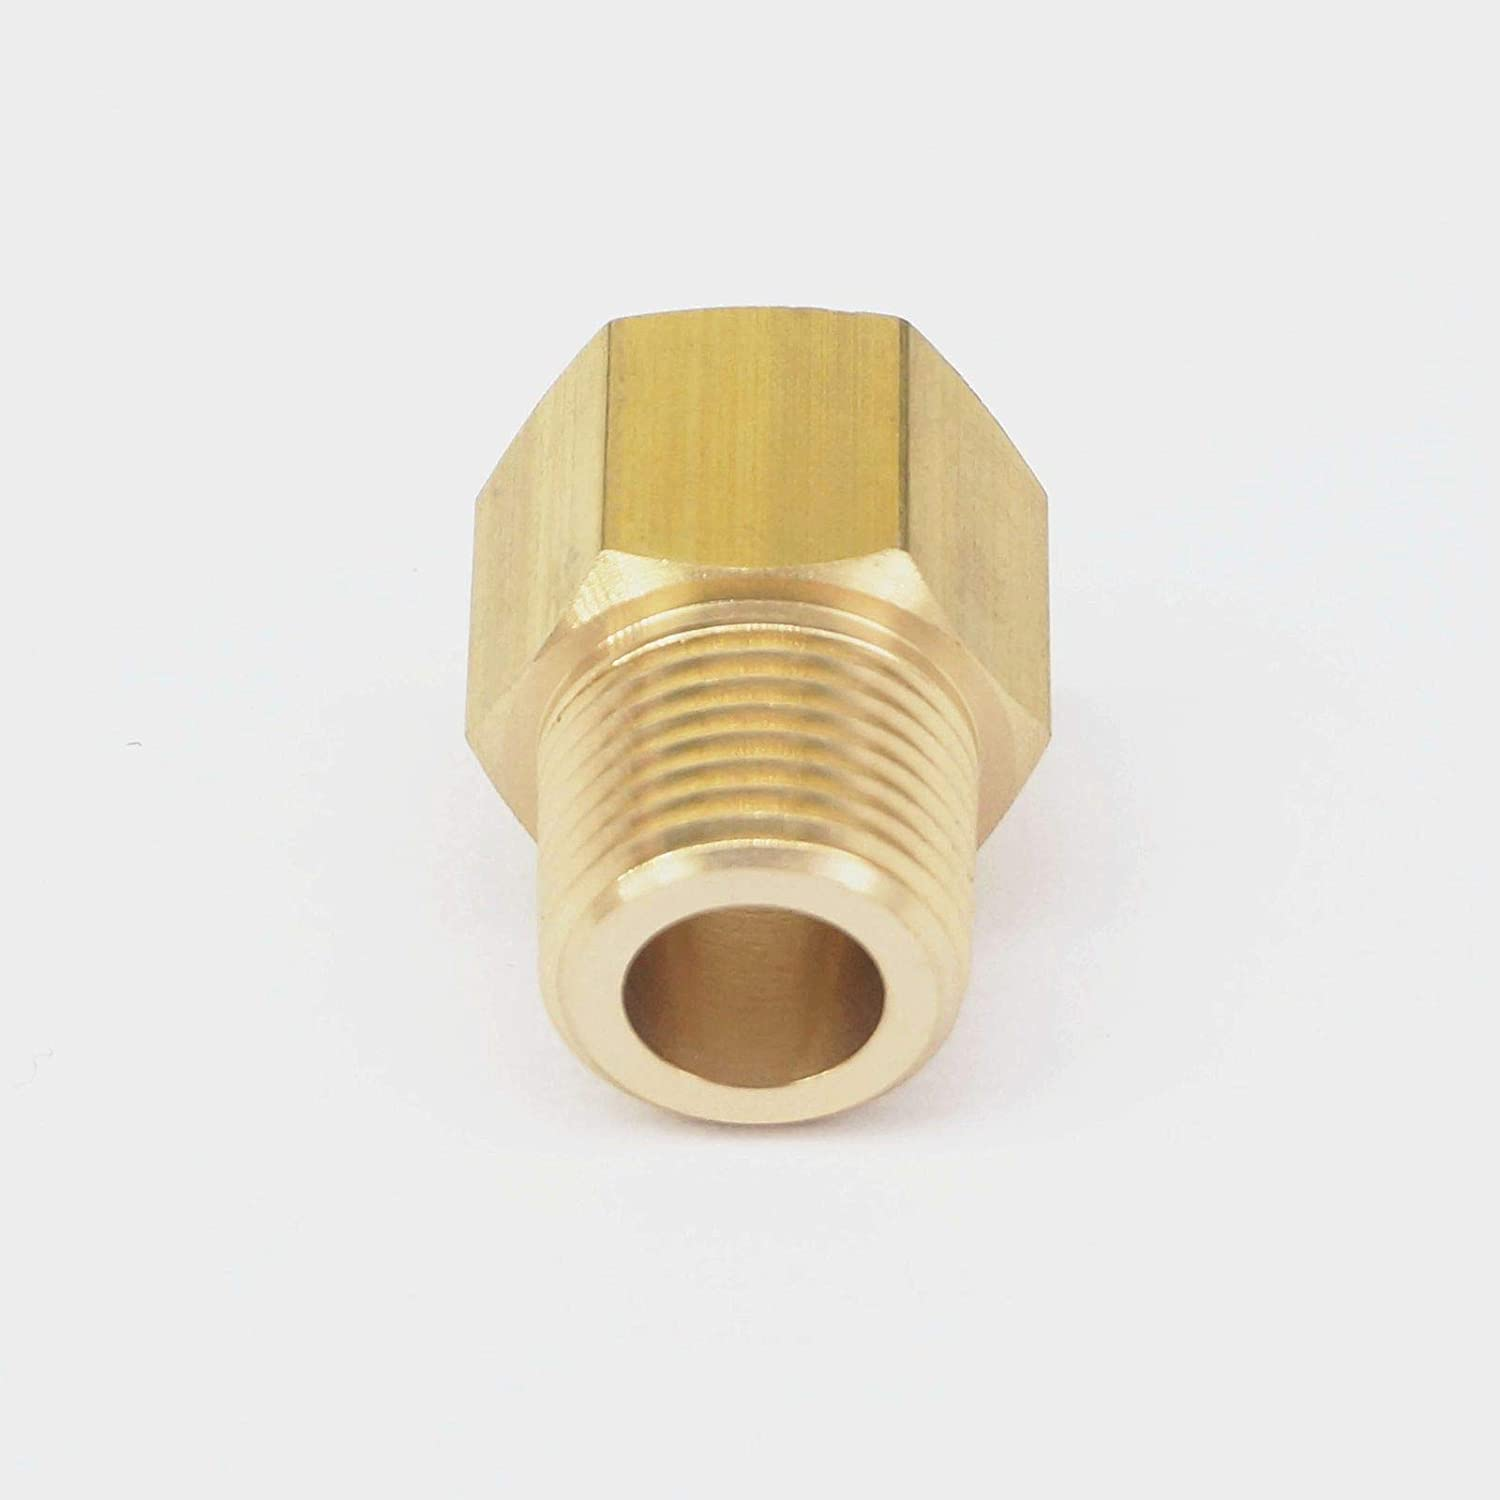 Sorekarain 3//8 NPT Male x 3//8 BSPP Female Brass Pipe Fitting Connector Adapter for Pressure Gauge Air Gas Fuel Water